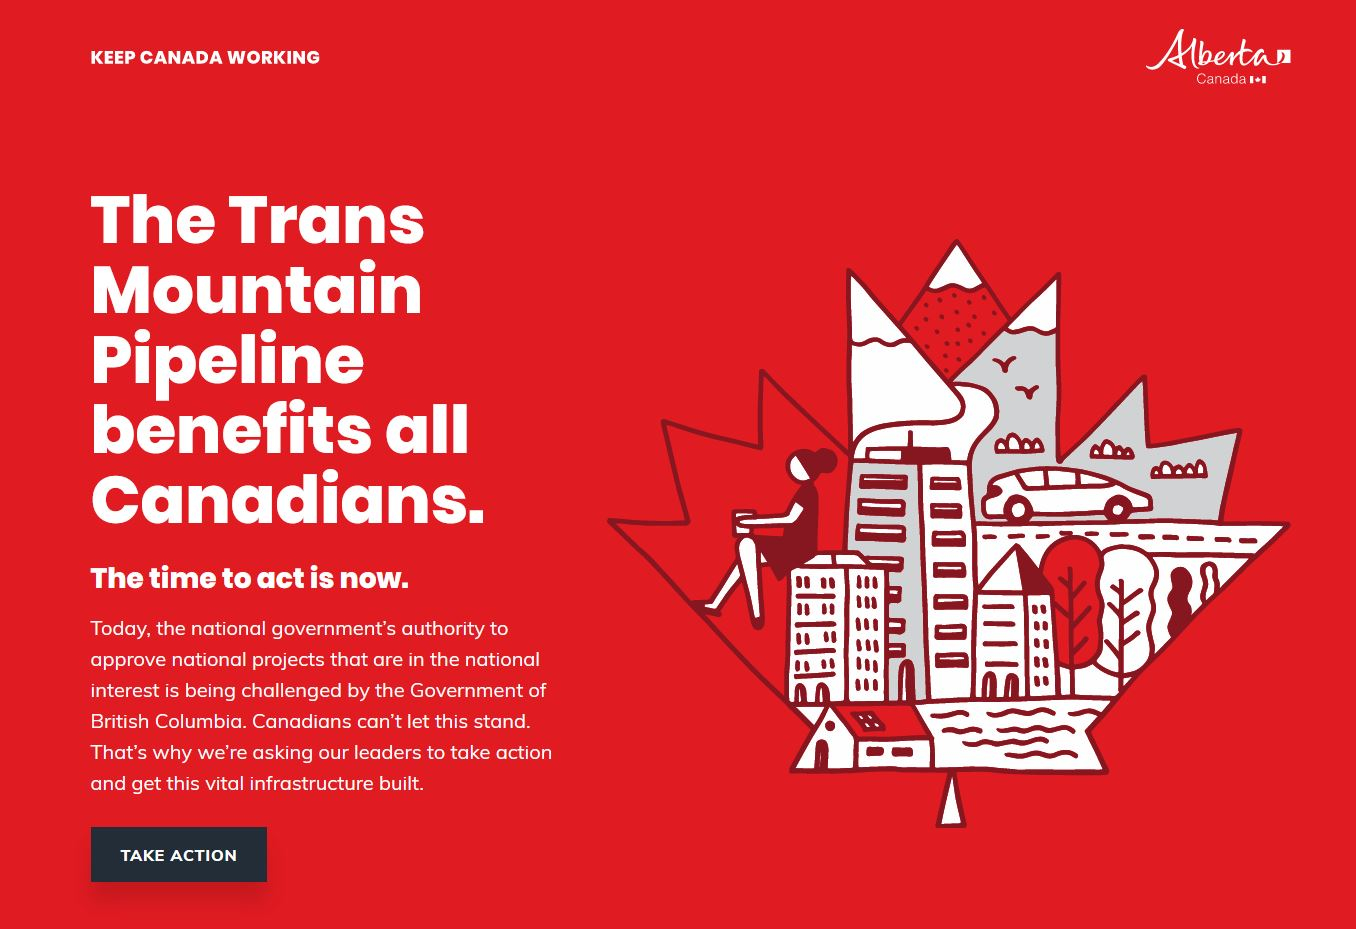 Alberta's Notley launches pro-Trans Mountain pipeline advertisements in BC